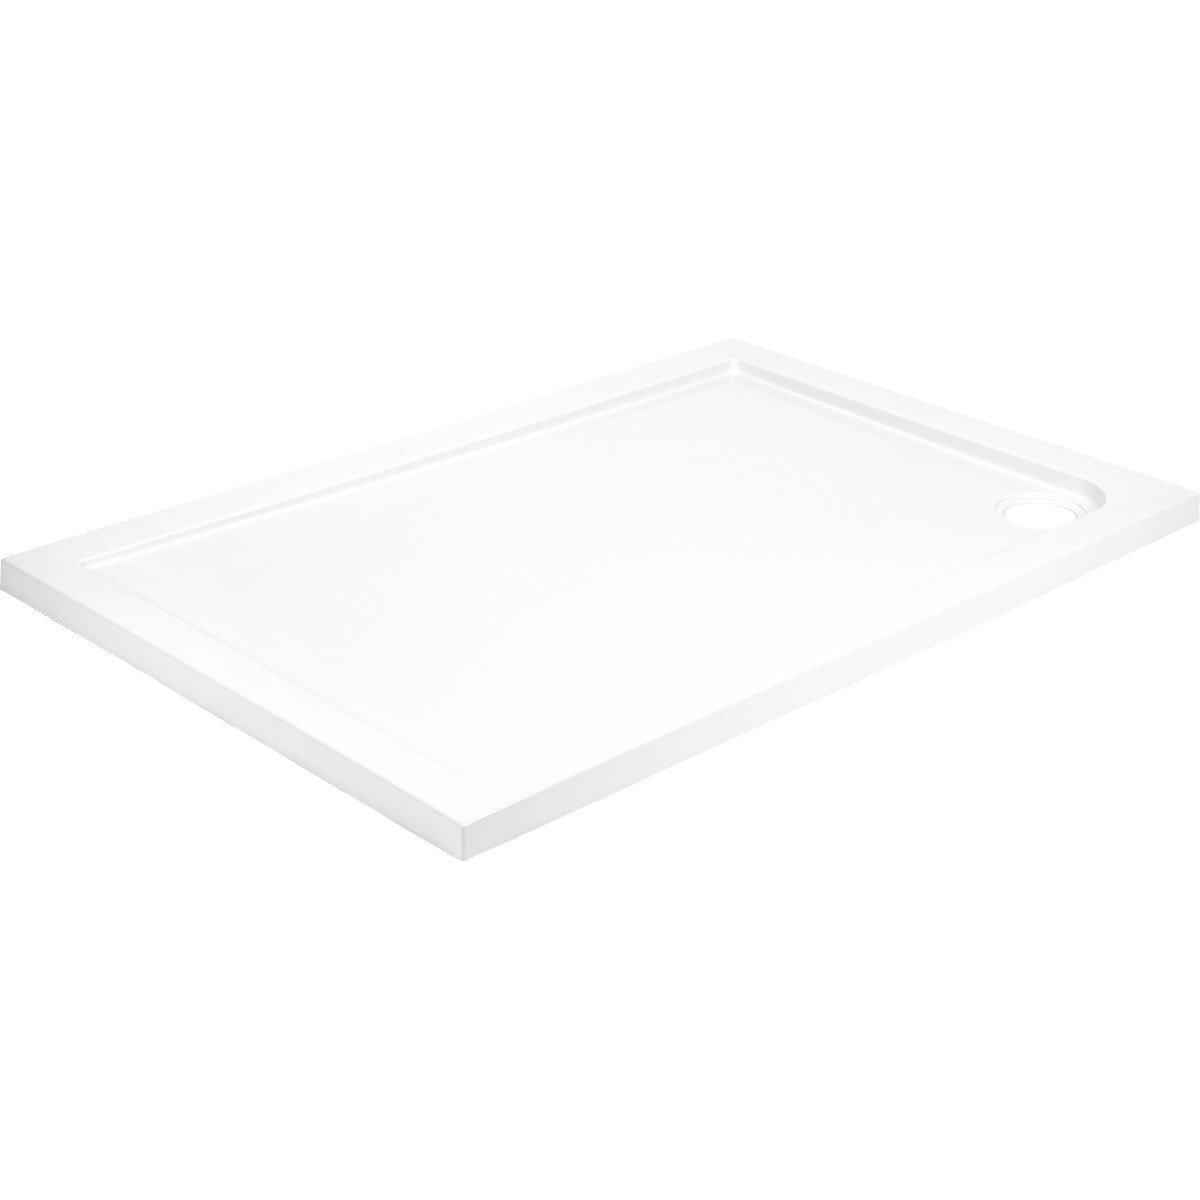 40mm Pearlstone 900 x 800 Rectangular Shower Tray